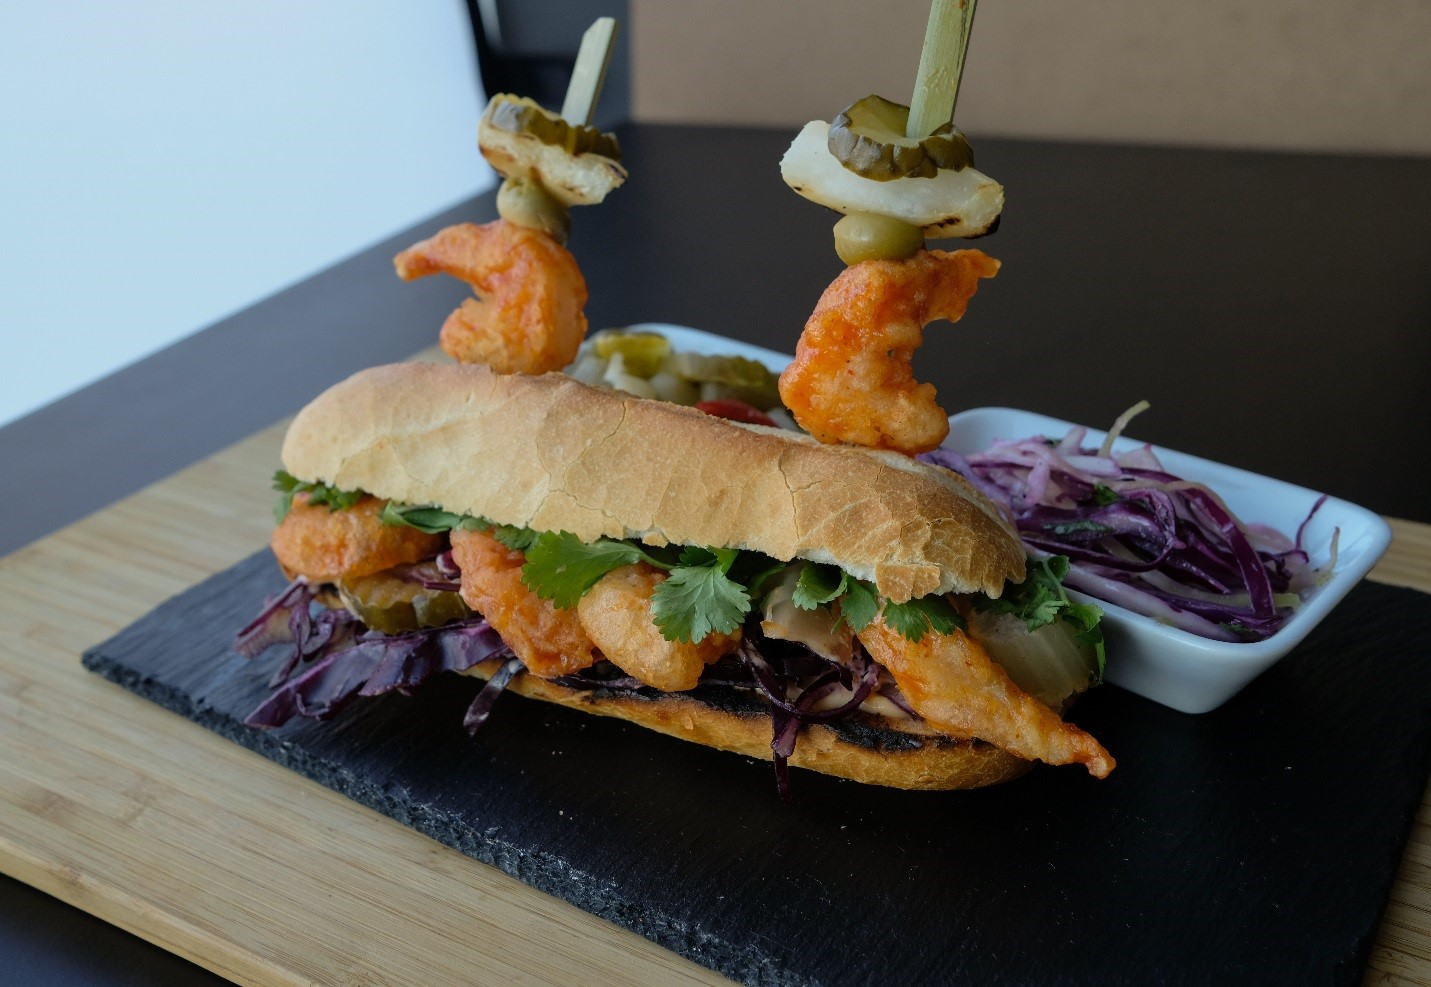 Bam Bam Shrimp Po' Mi Seafood Sandwich Recipe – An East Meets West Fusion Dish!